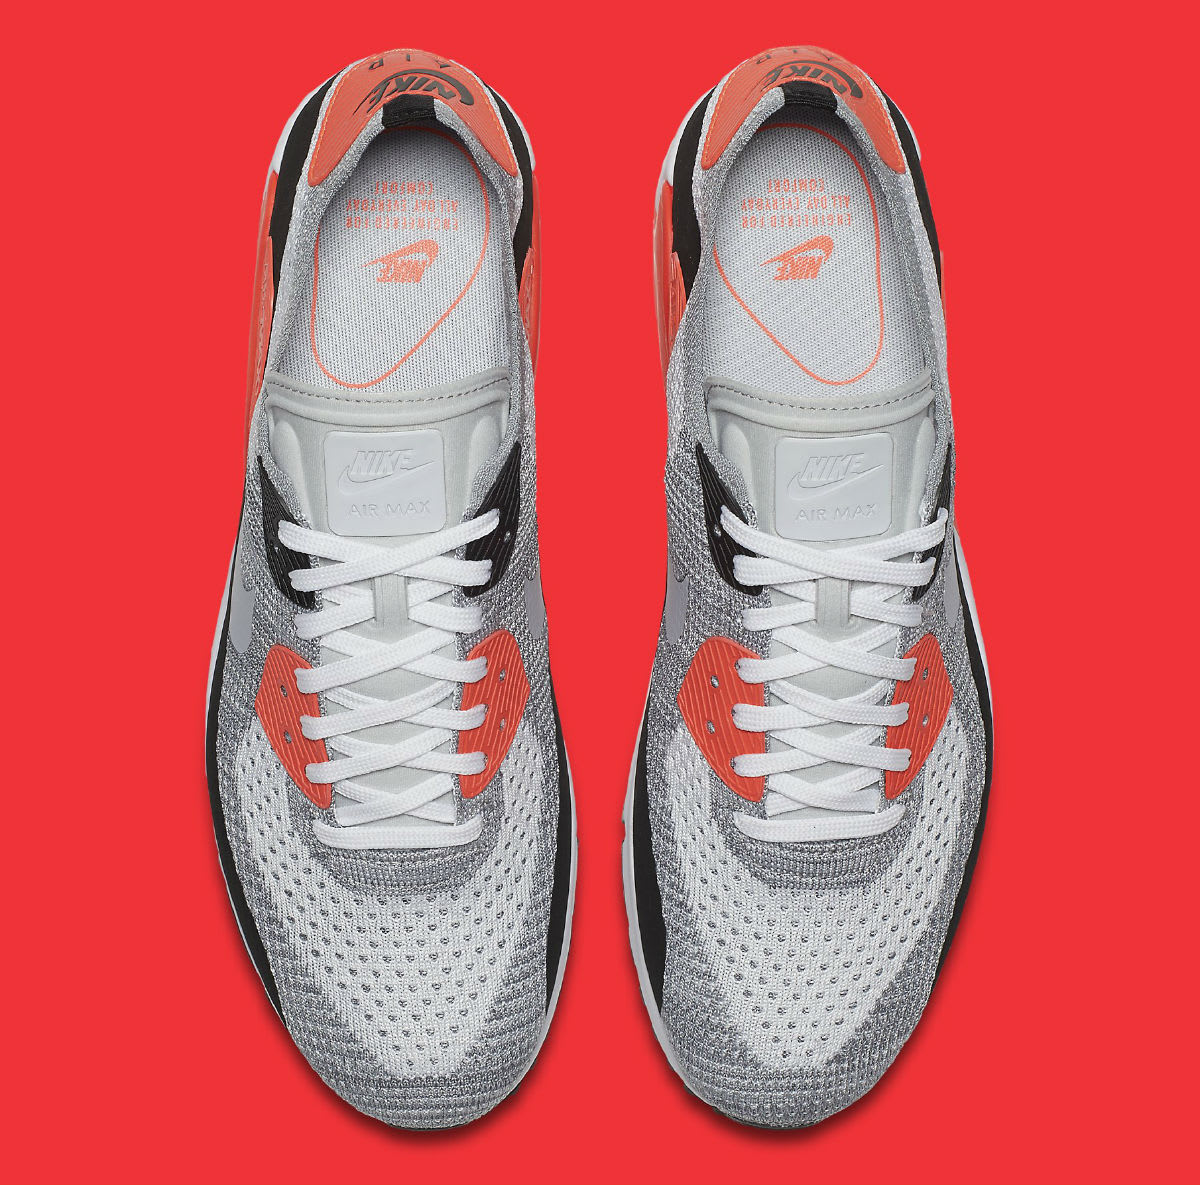 Nike Air Max 90 Ultra Flyknit Infrared Release Date Top 875943_100